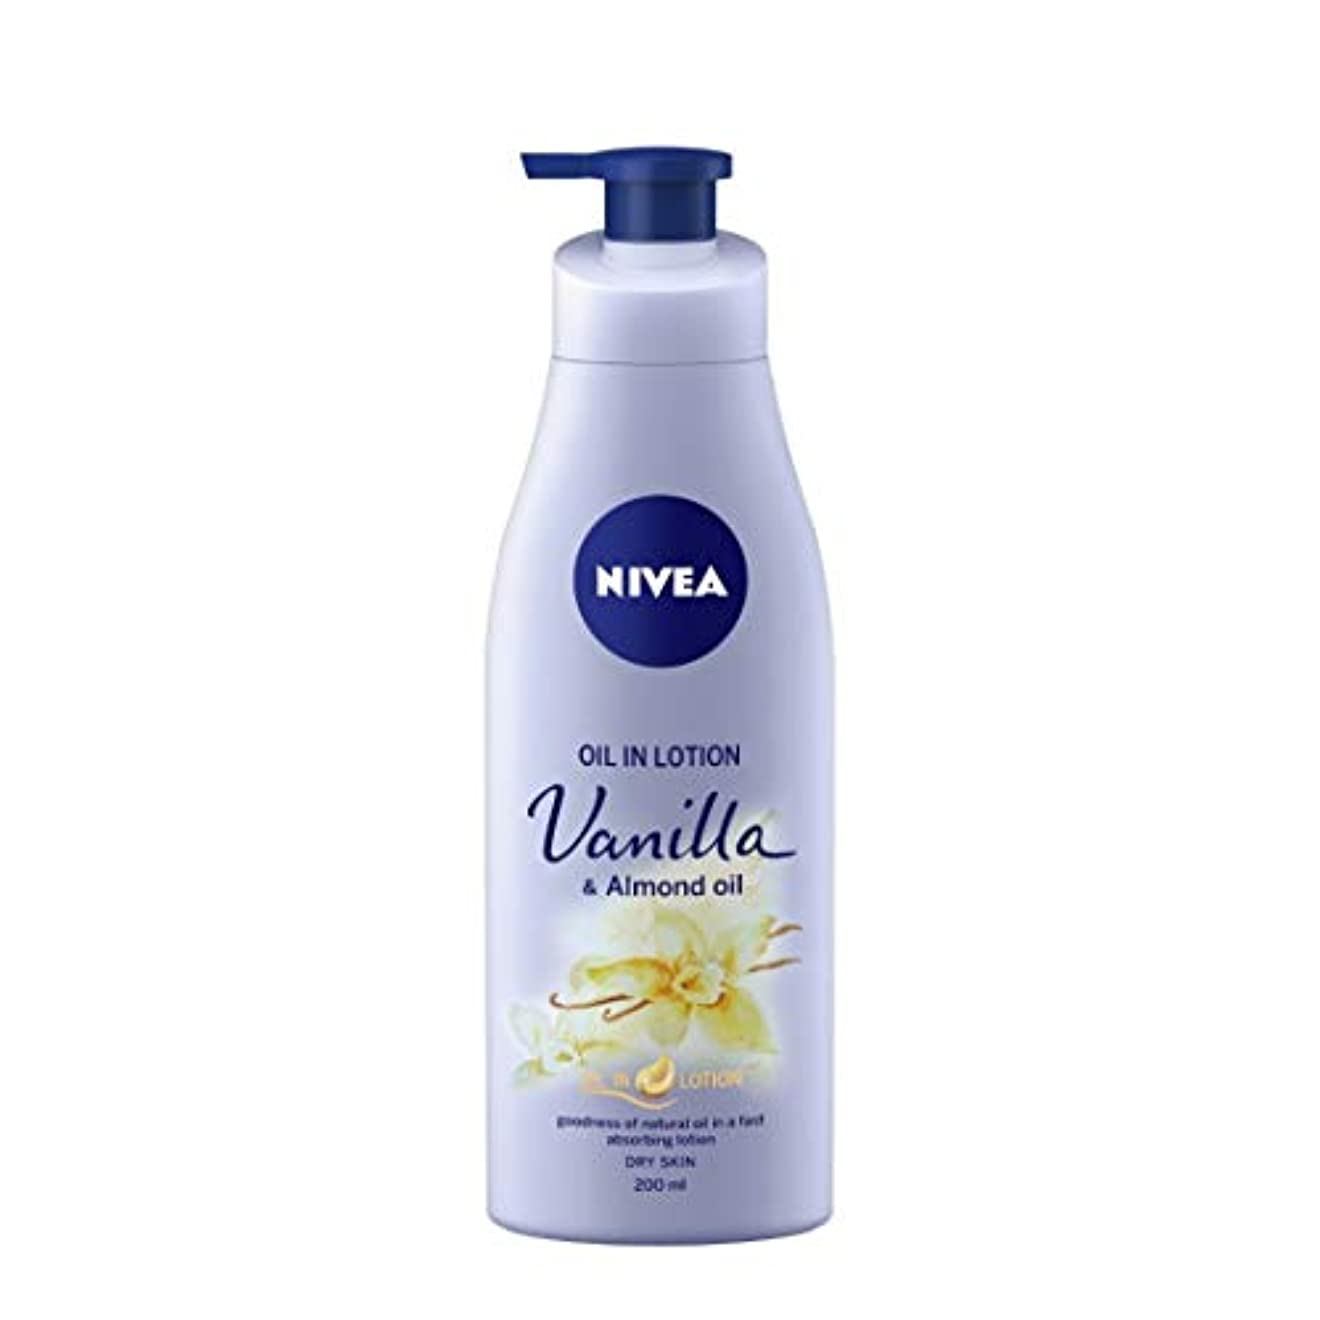 NIVEA Oil in Lotion, Vanilla and Almond Oil, 200ml